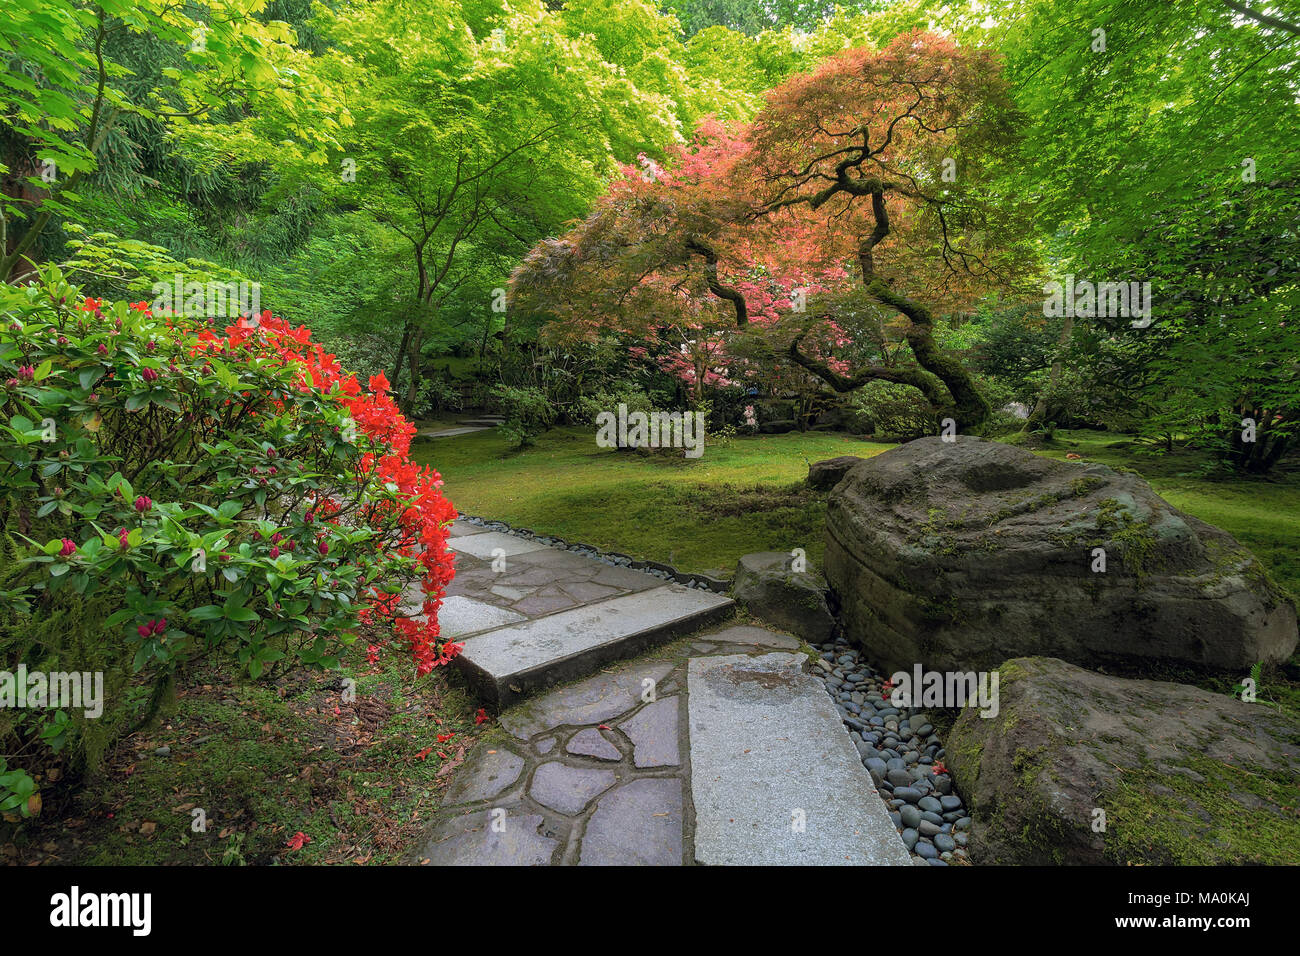 Stone Path With Rocks Maple Trees Plants Shrubs In Japanese Garden During  Spring Season